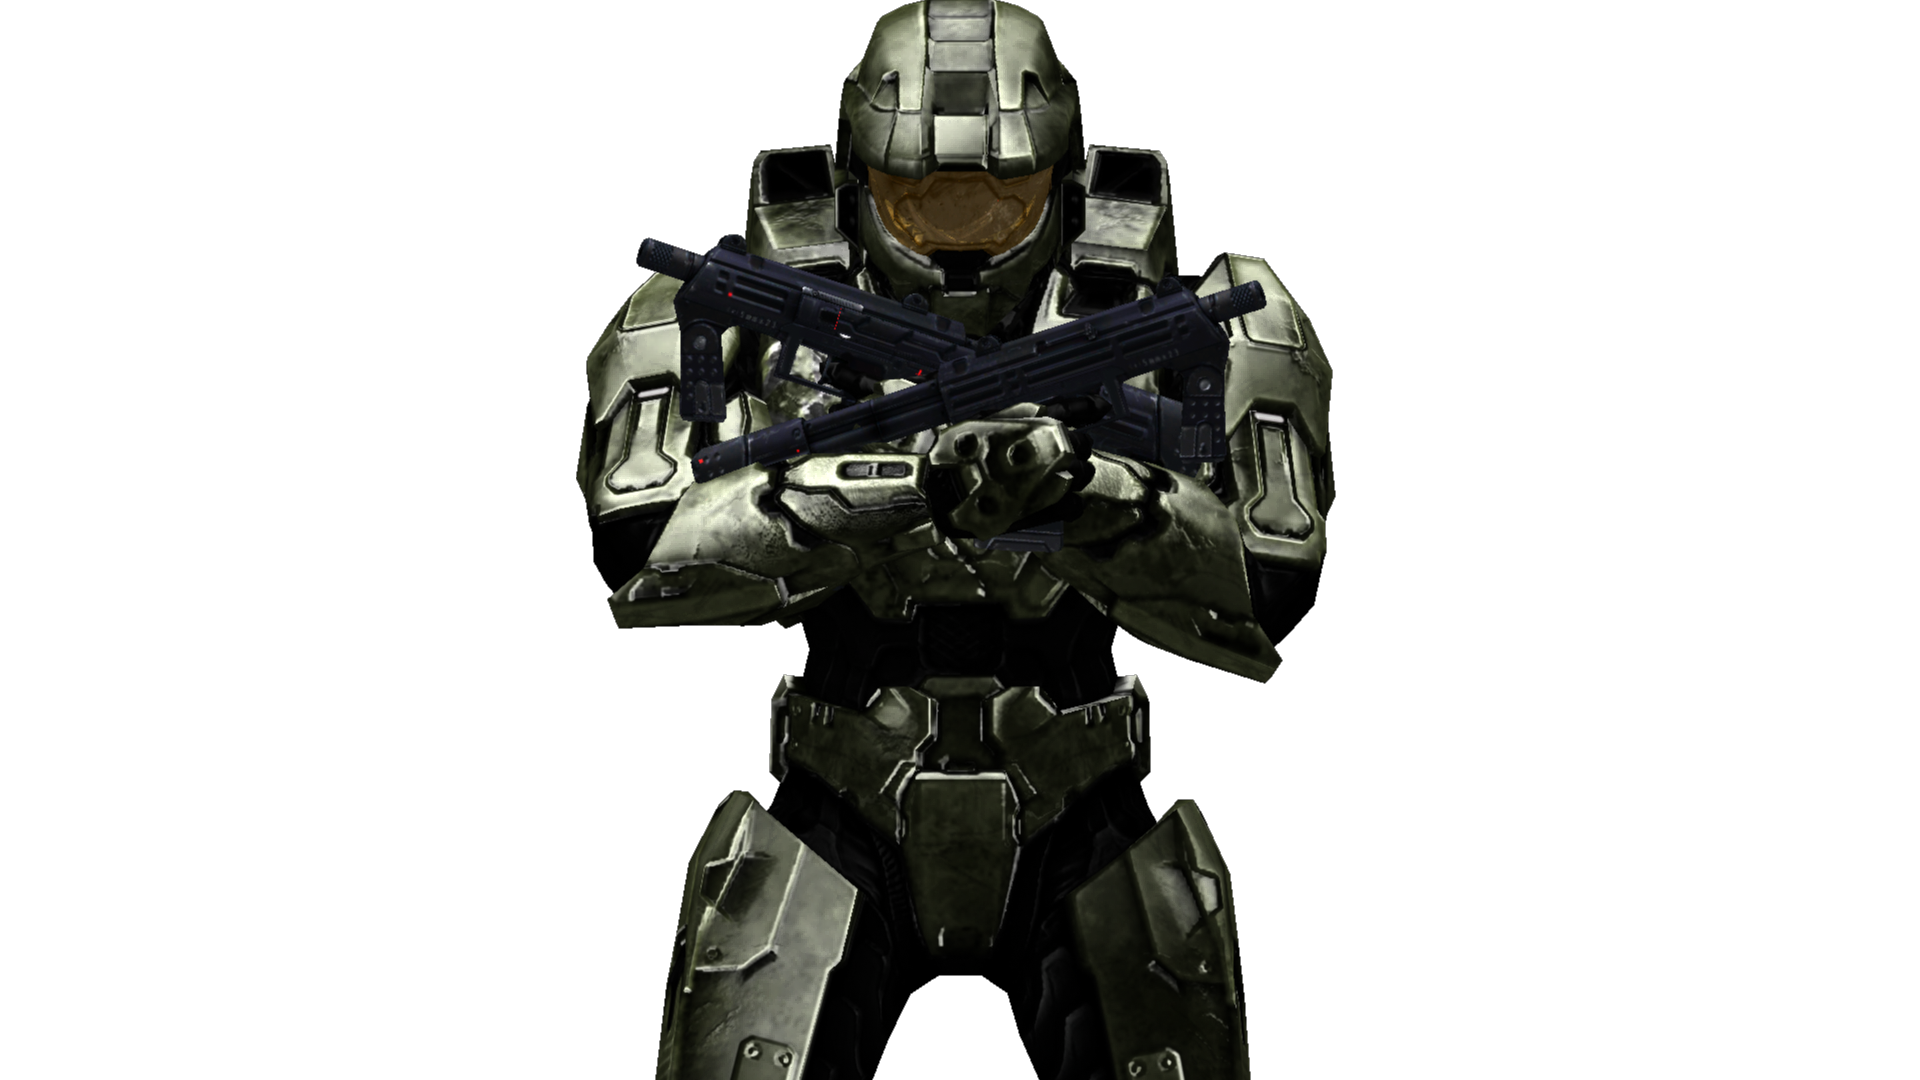 http://news.tgn.tv/wp-content/uploads/2010/09/blue_spartan_tie.png